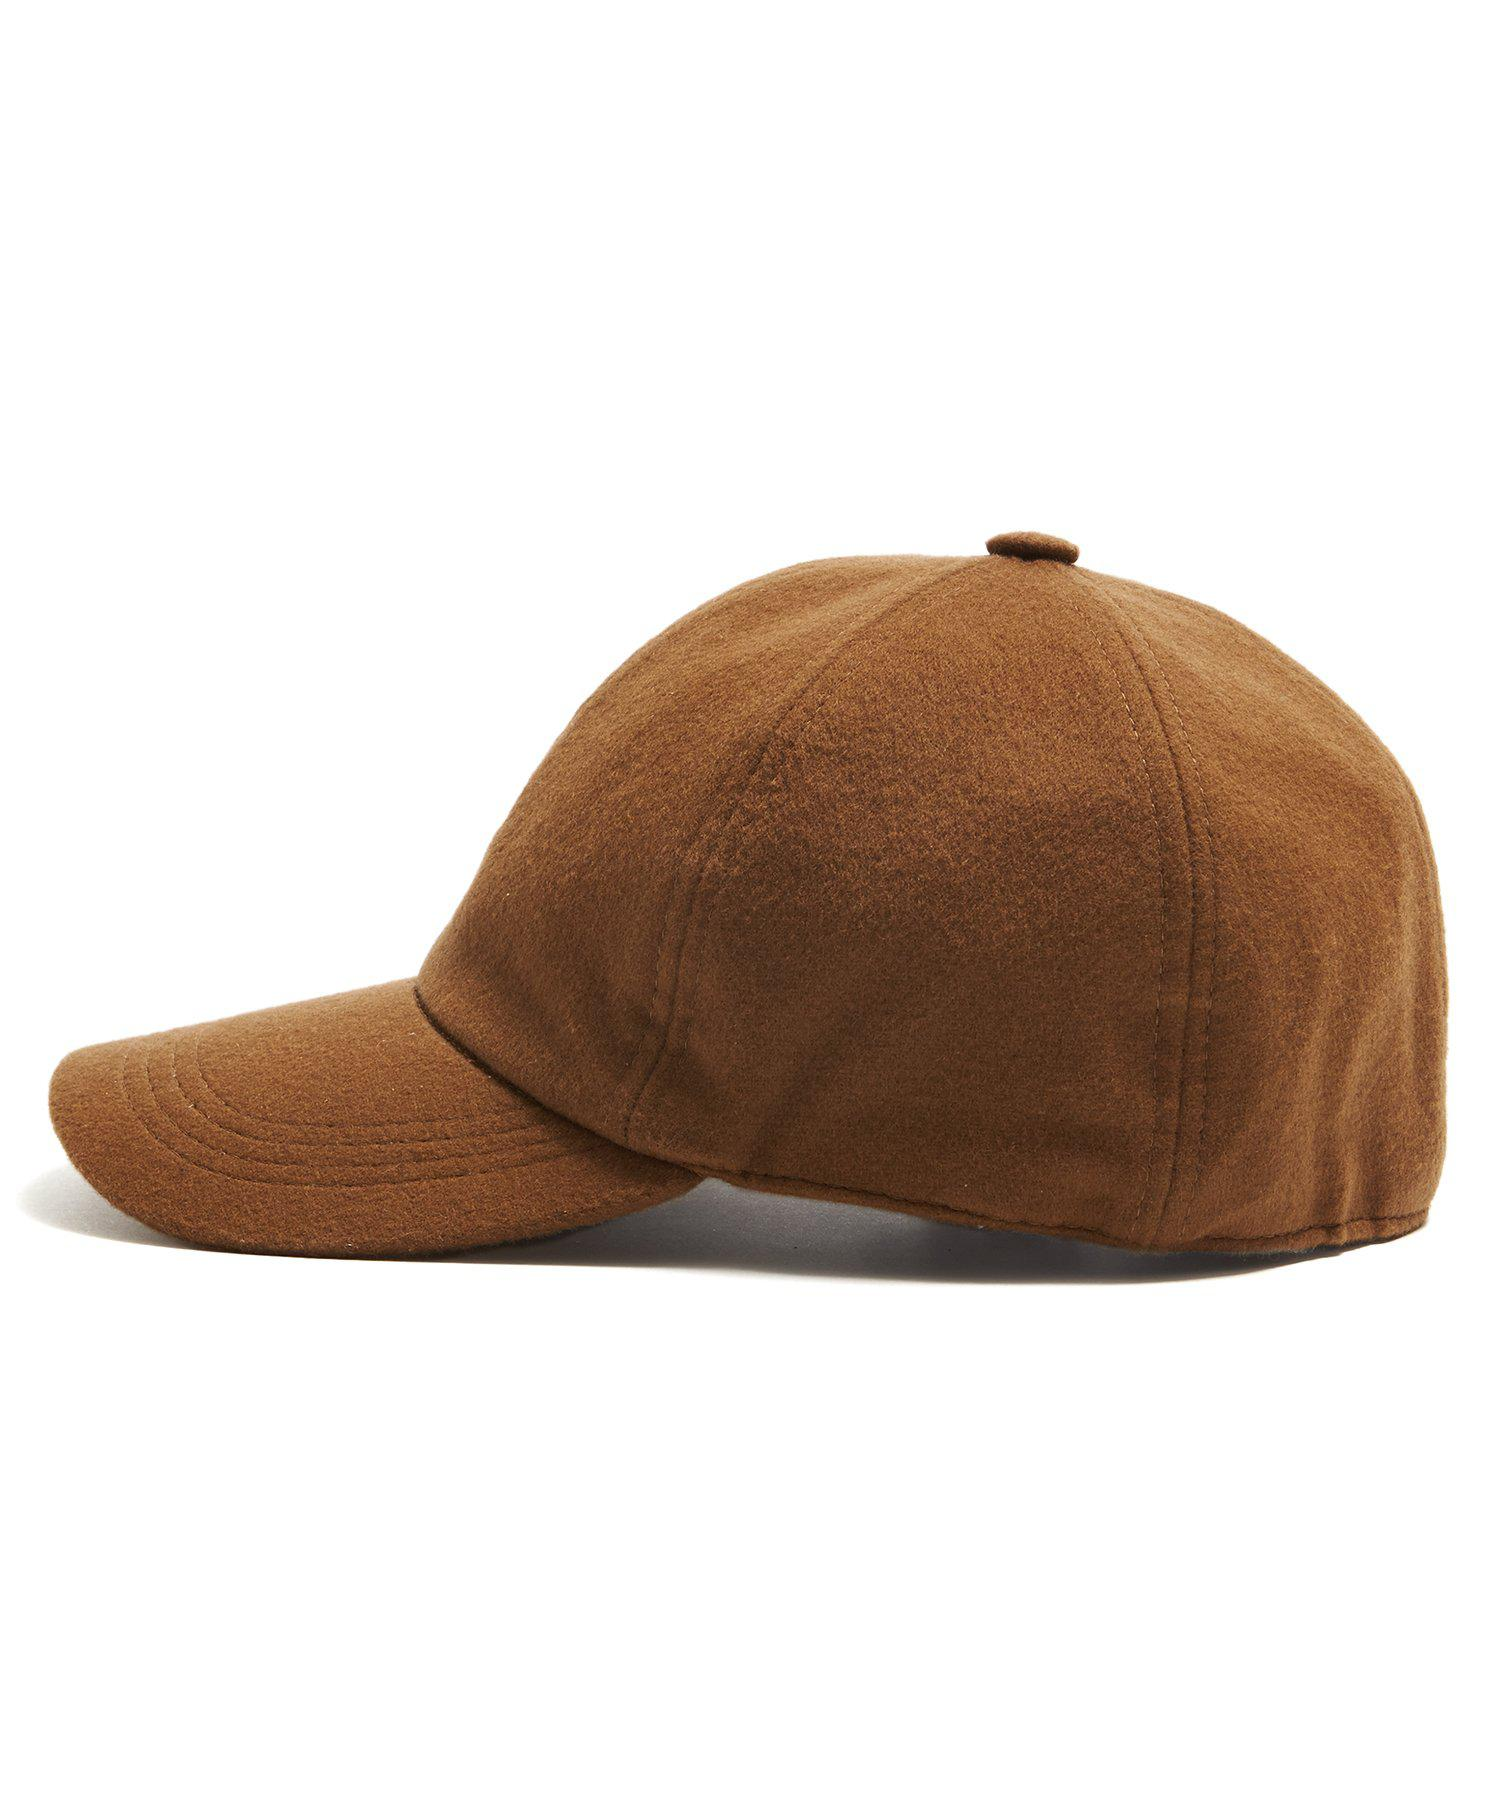 Lock   Co. Lock   Co. Rimini Wool alpaca Dad Hat In Camel for Men - Lyst 4b151c0144e